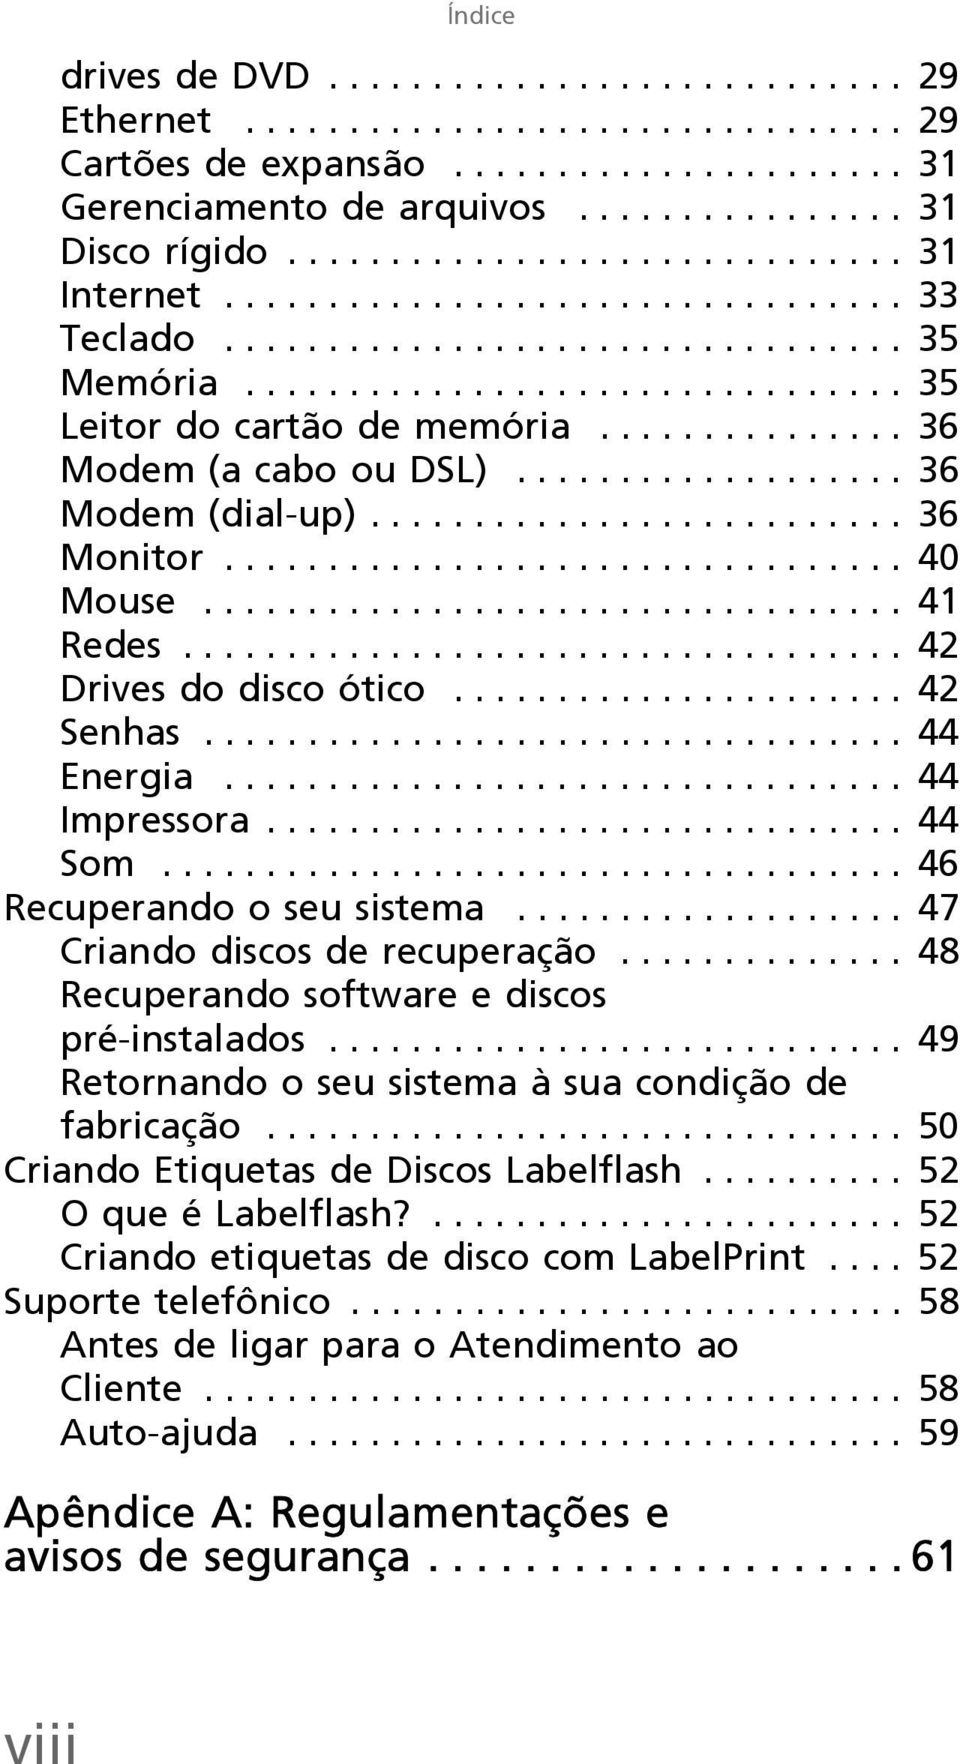 .............. 36 Modem (a cabo ou DSL)................... 36 Modem (dial-up).......................... 36 Monitor................................. 40 Mouse.................................. 41 Redes.